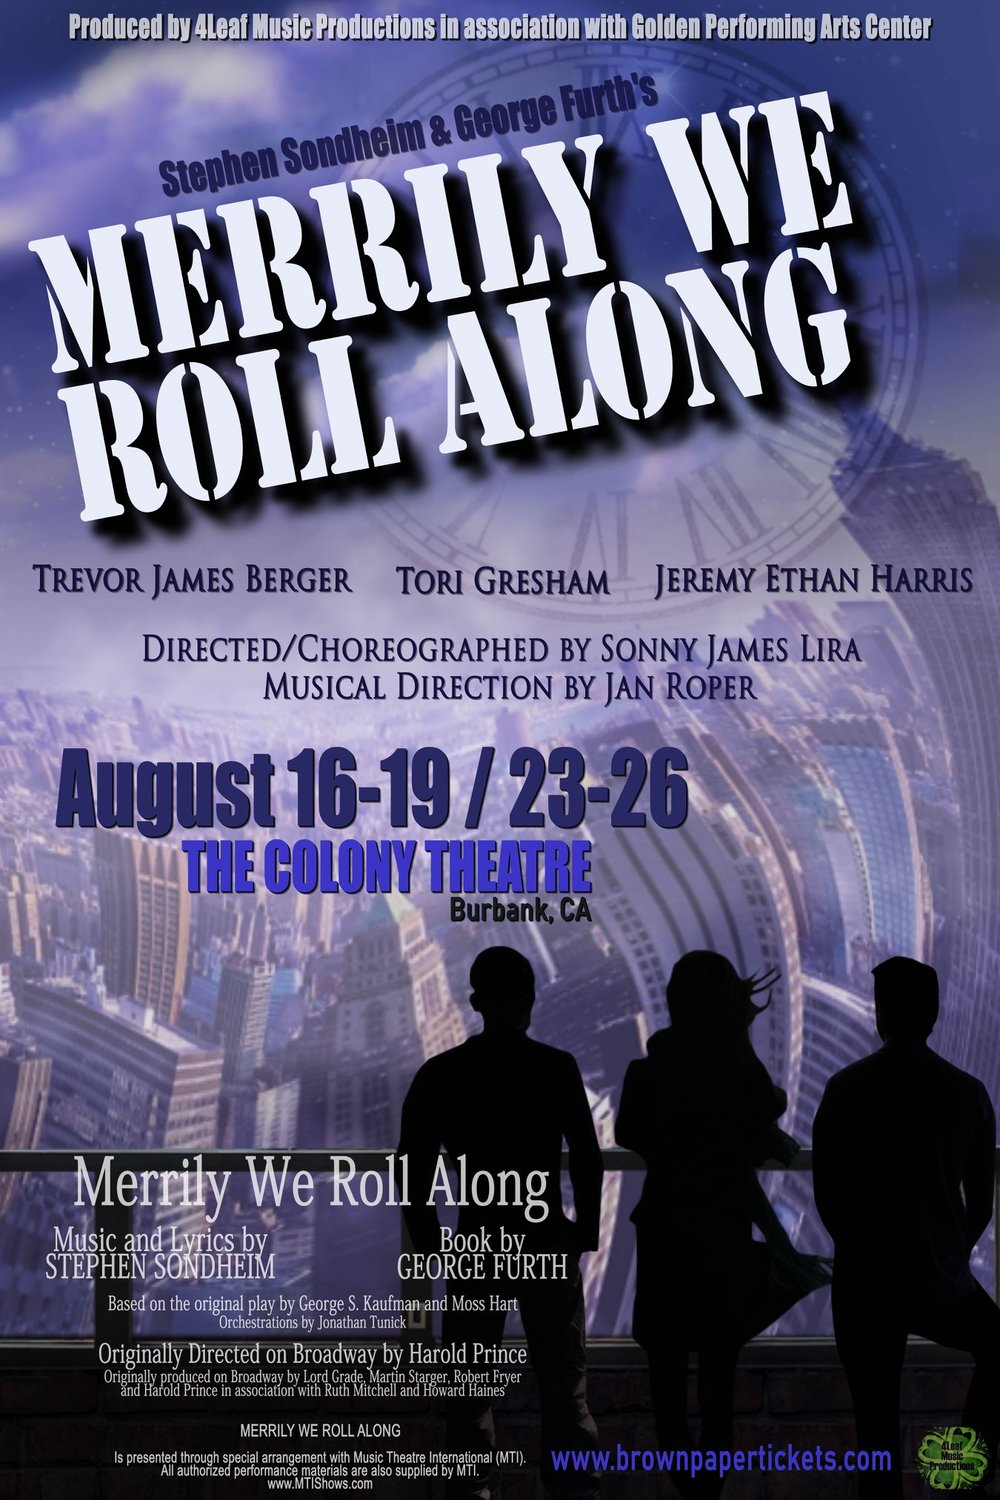 Franklin shepard - August 2018 - Trevor will be playing Franklin Shepard in 4Leaf Music Production's debut production of Merrily We Roll Along running August 16-19 and August 23-26, 2018 at The Colony Theatre in Burbank, California.For tickets: https://www.brownpapertickets.com/event/3511635